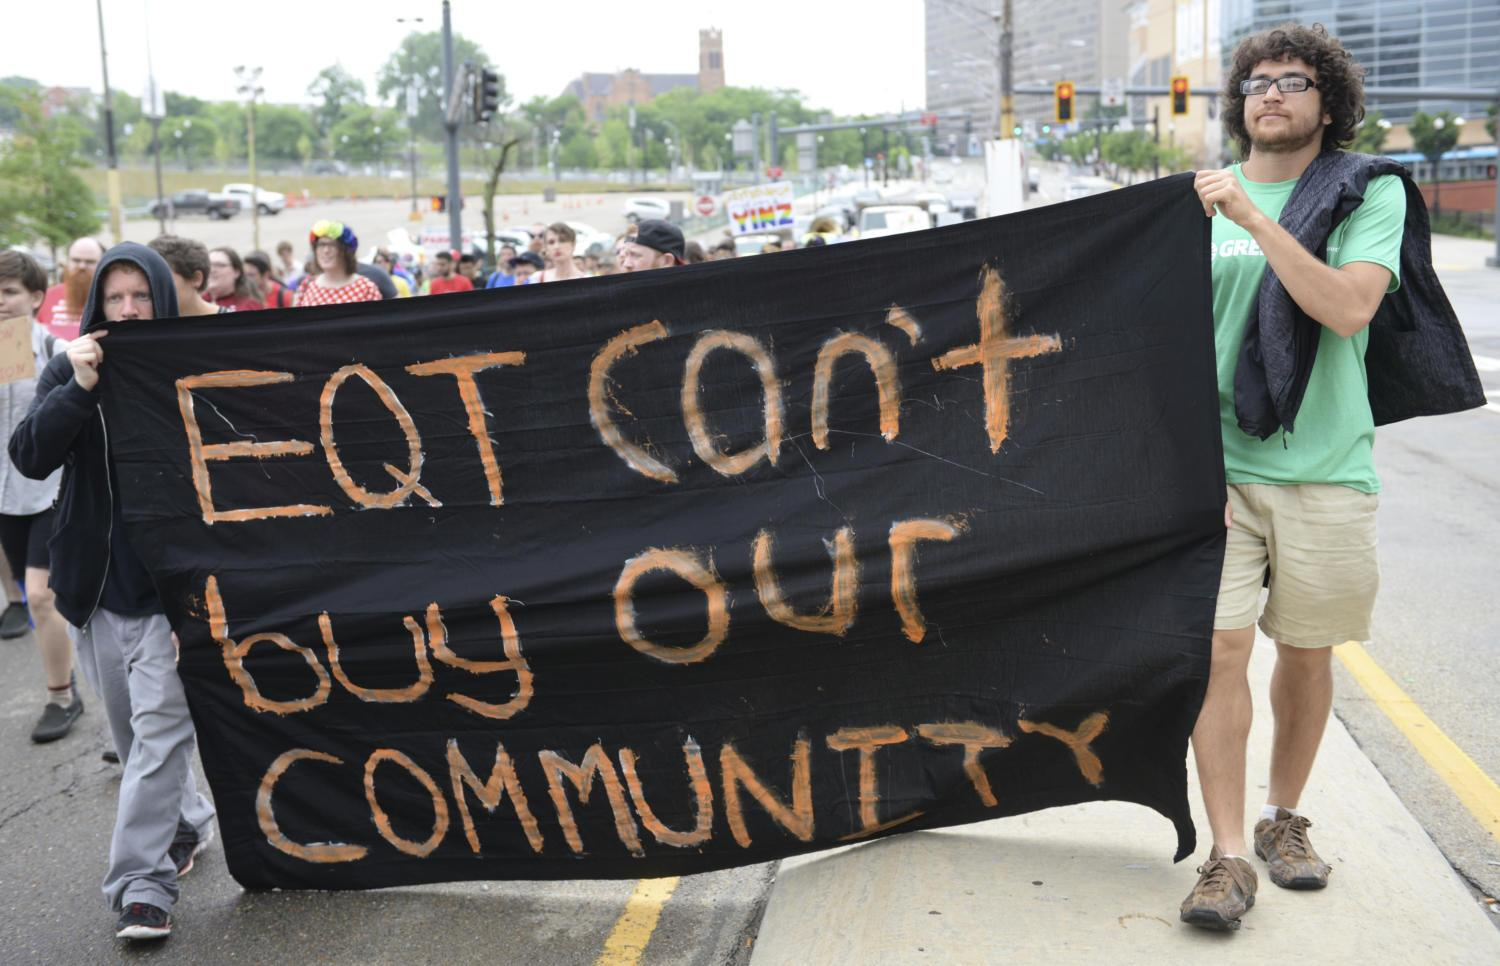 People's Pride was held in opposition to the annual pride festivities hosted by EQT — a Pittsburgh-based oil and natural gas company. (Photo by Jon Kunitsky | Staff Photographer)